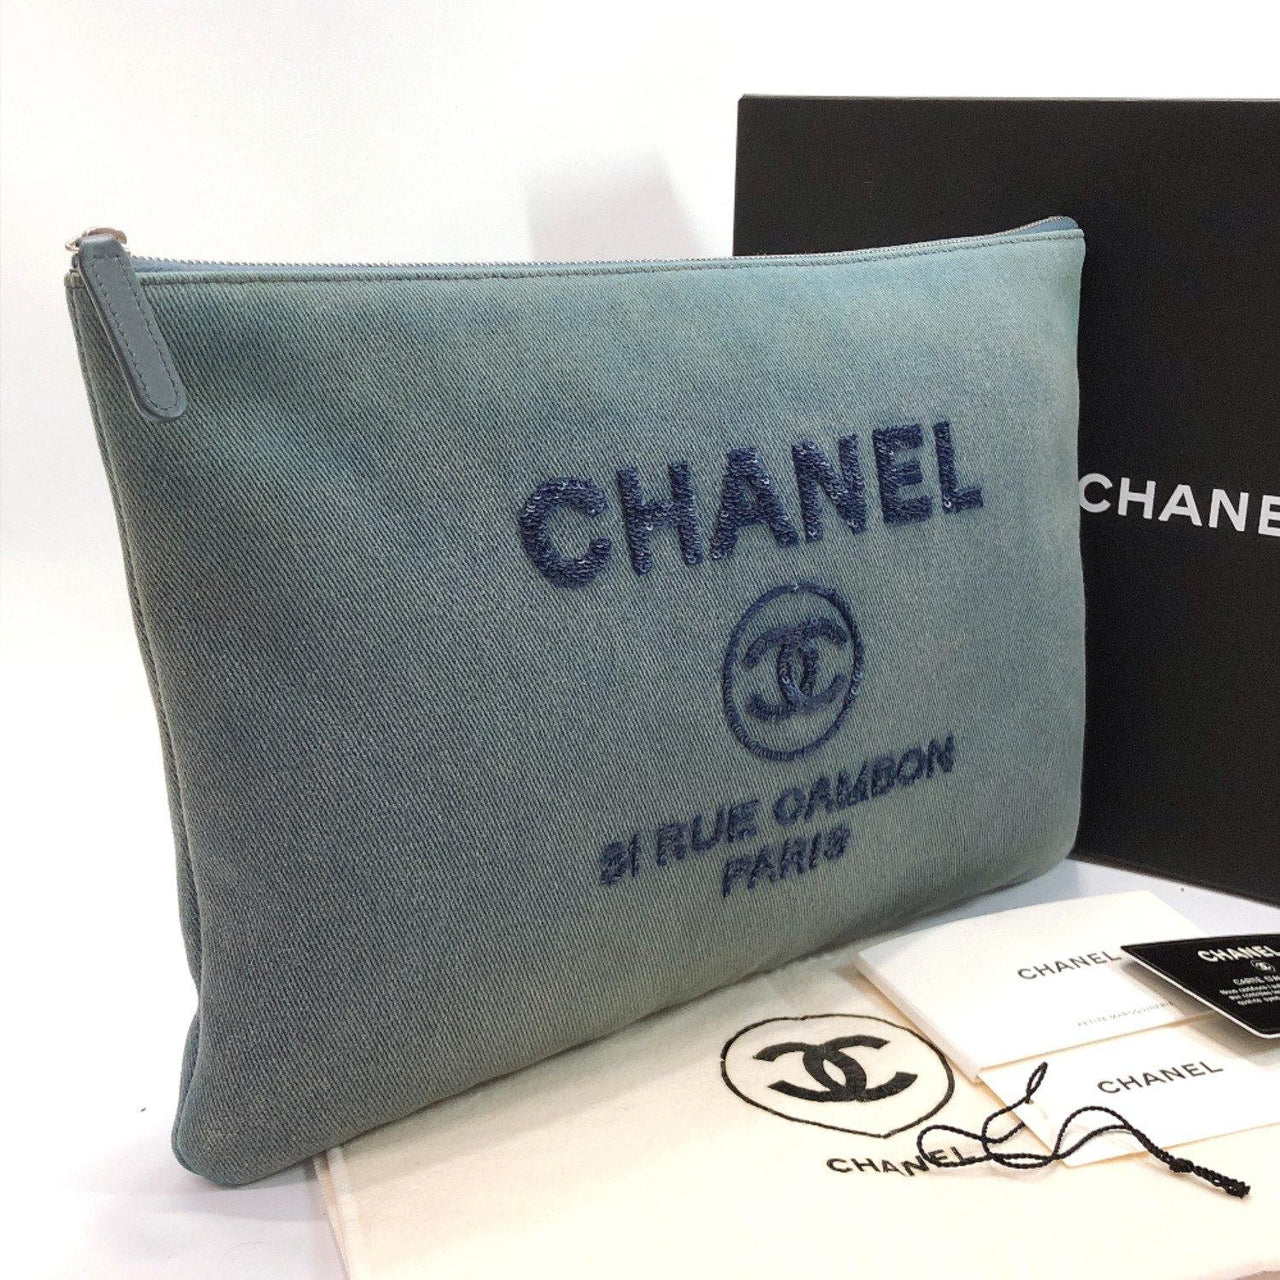 CHANEL Clutch bag A80117 Deauville Sequin denim blue Women Used - JP-BRANDS.com